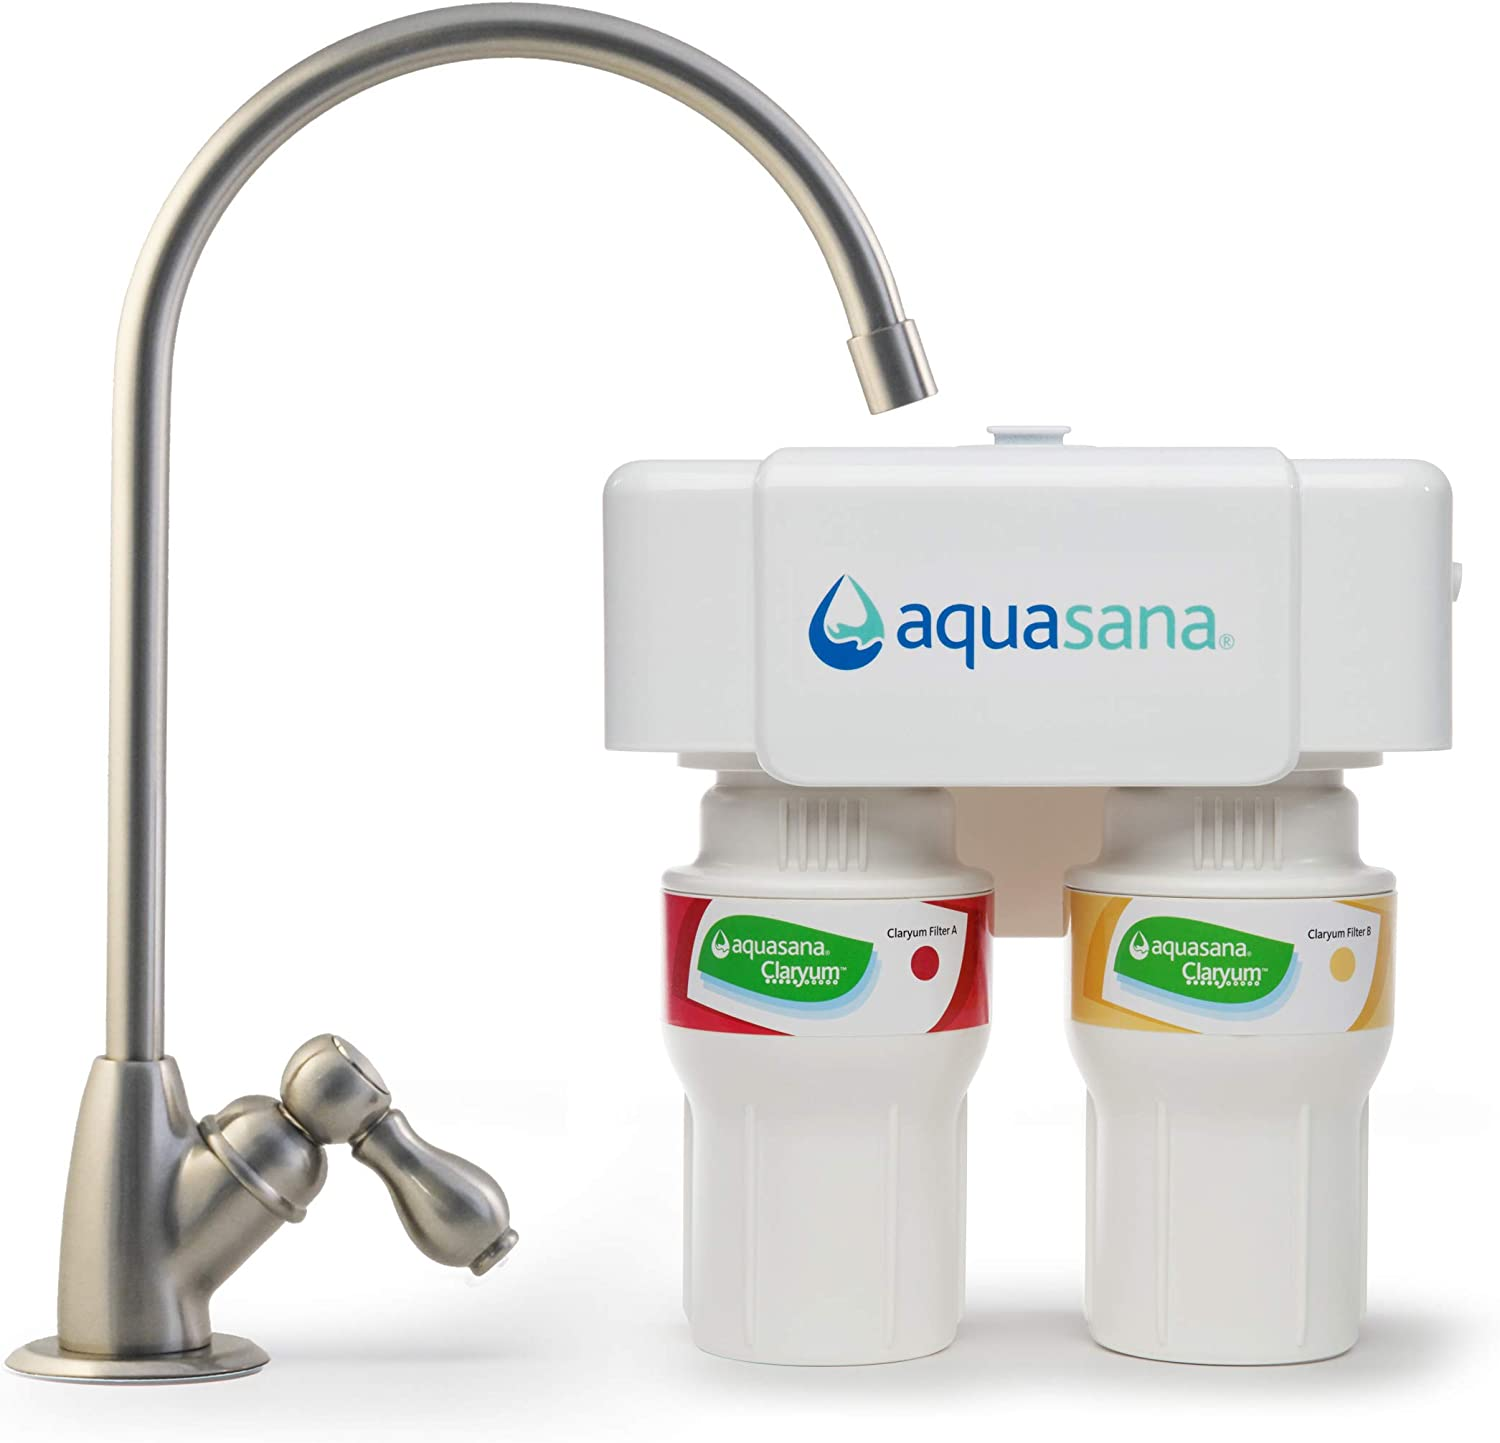 Best Under Sink Water Filter - Tested & Reviewed 2021